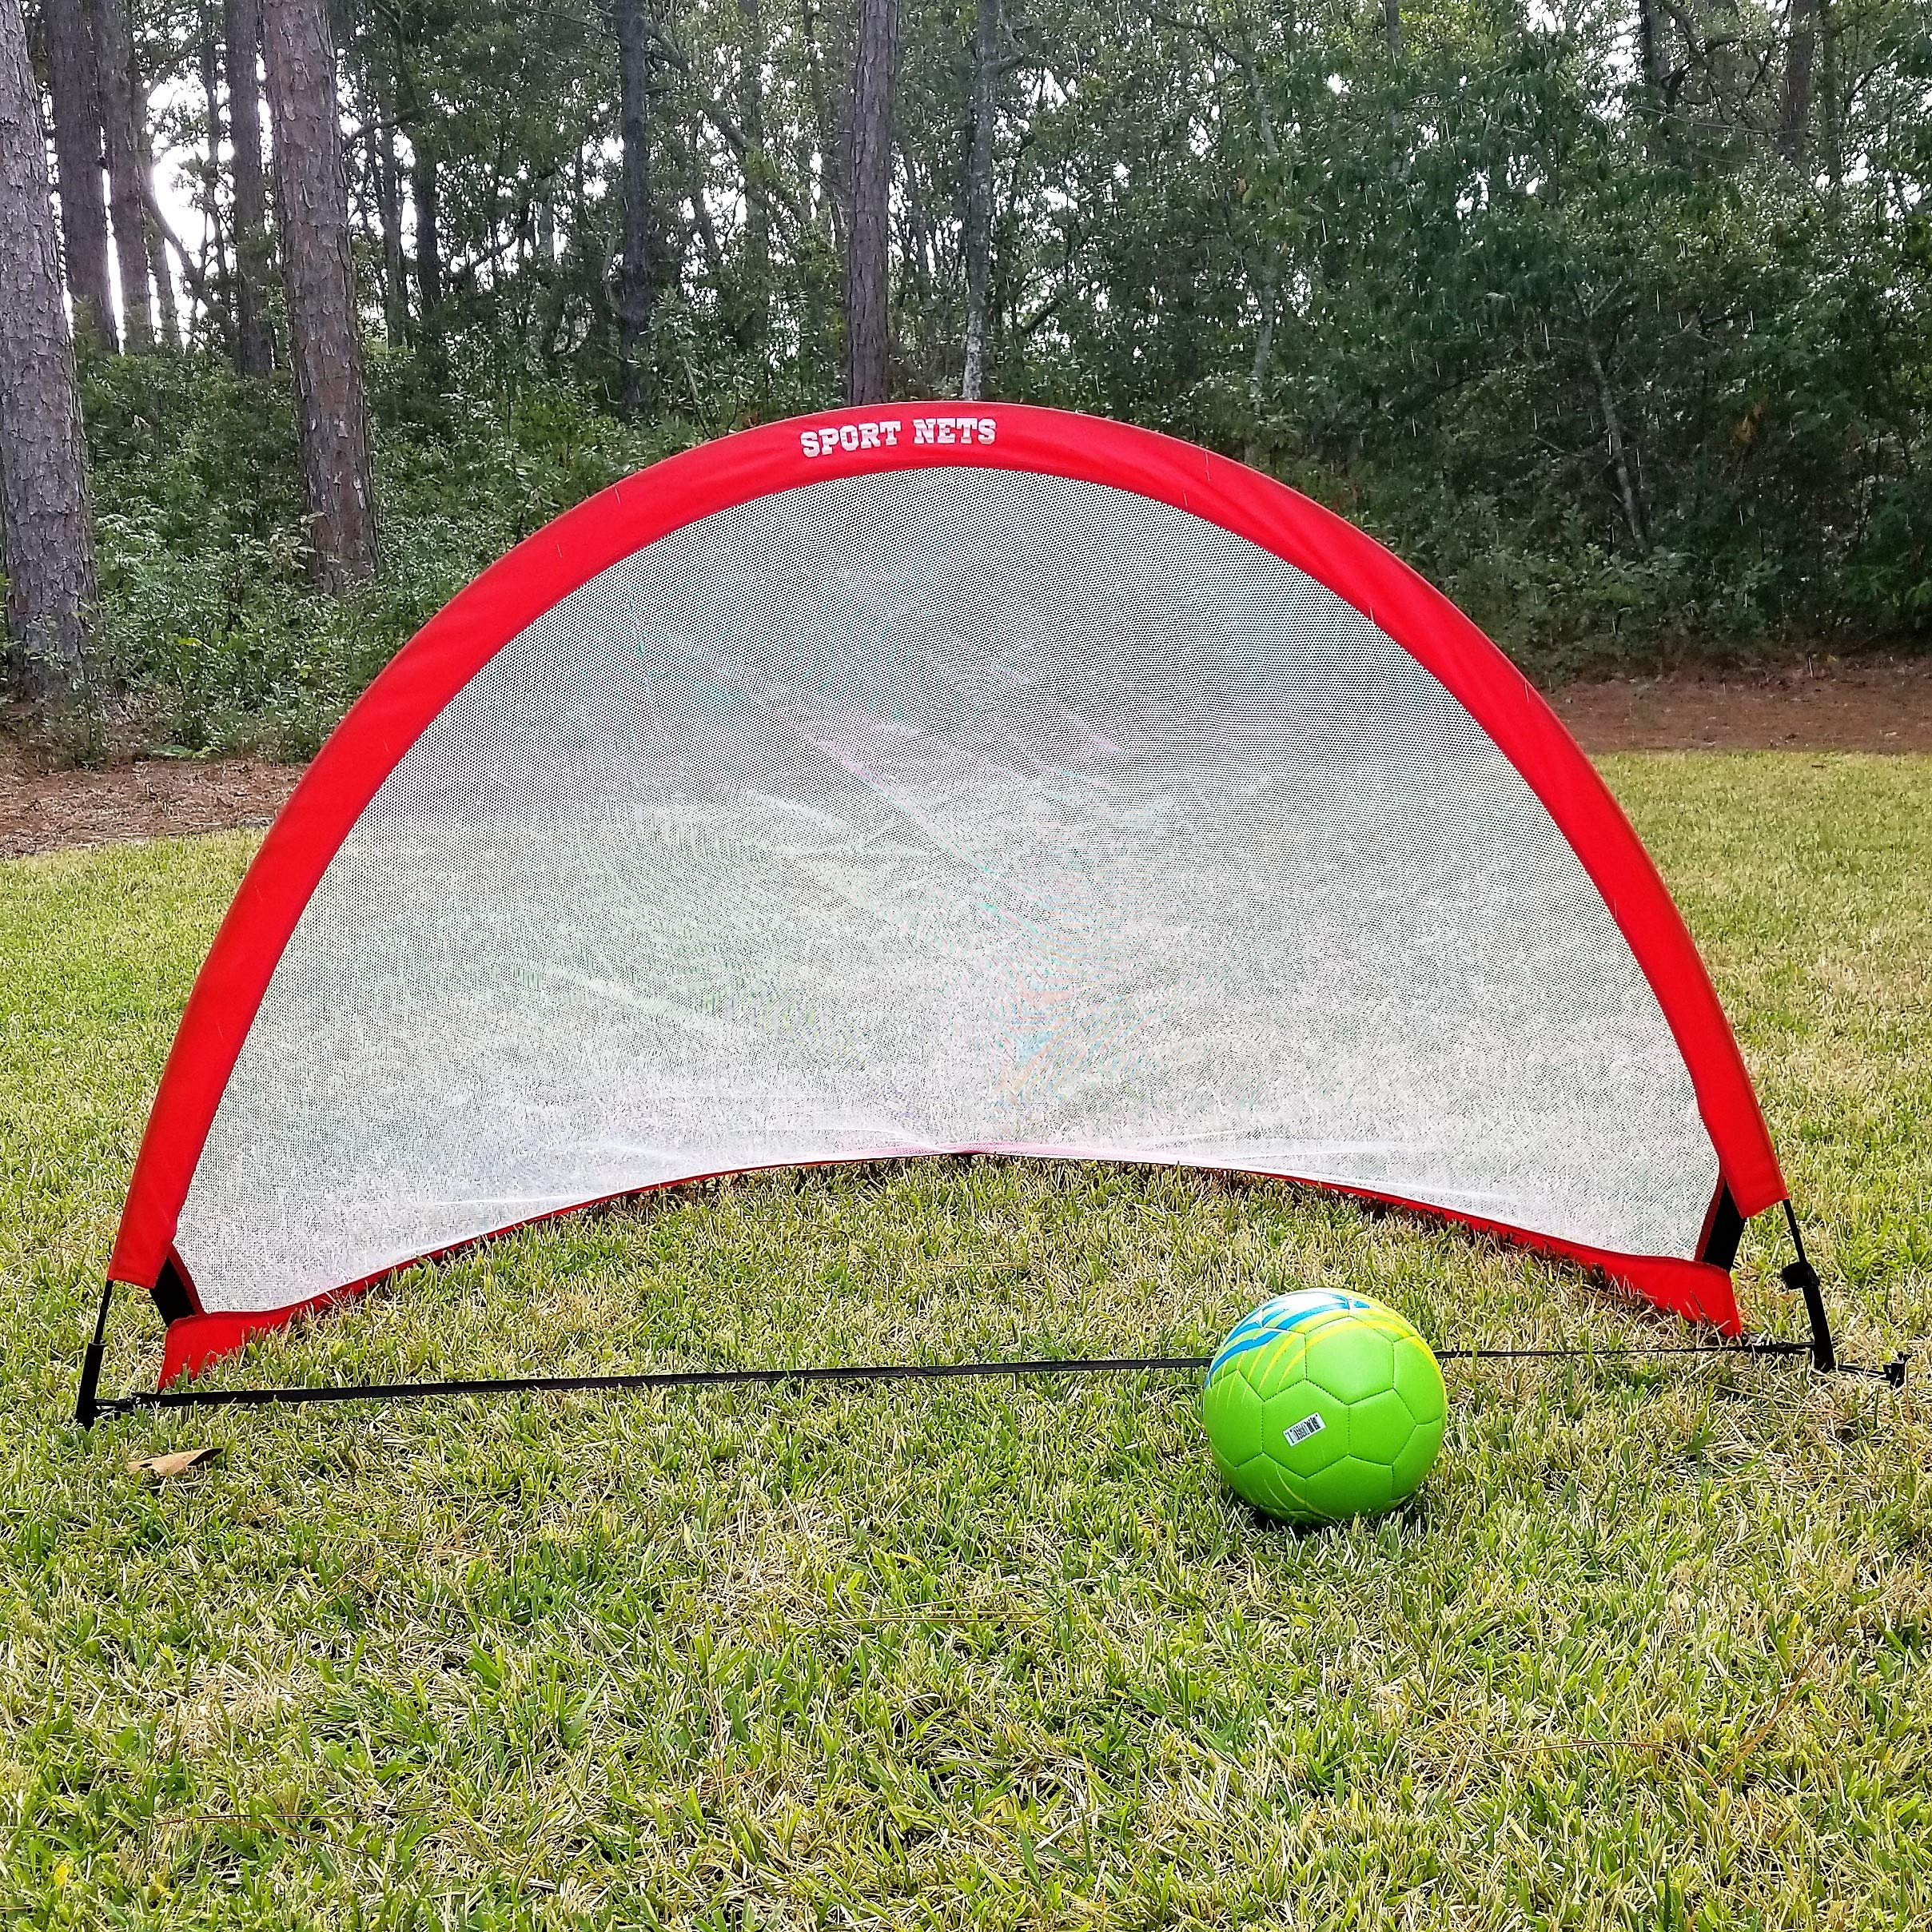 Sport Nets Portable Pop-Up Soccer Goals - Set of Two Soccer Nets with Carry Bag - Portable and Foldable 2.5ft, 4ft and 6ft Size Sets For Kids and Adults Soccer Training (6 FT (2 Goals & Bag))